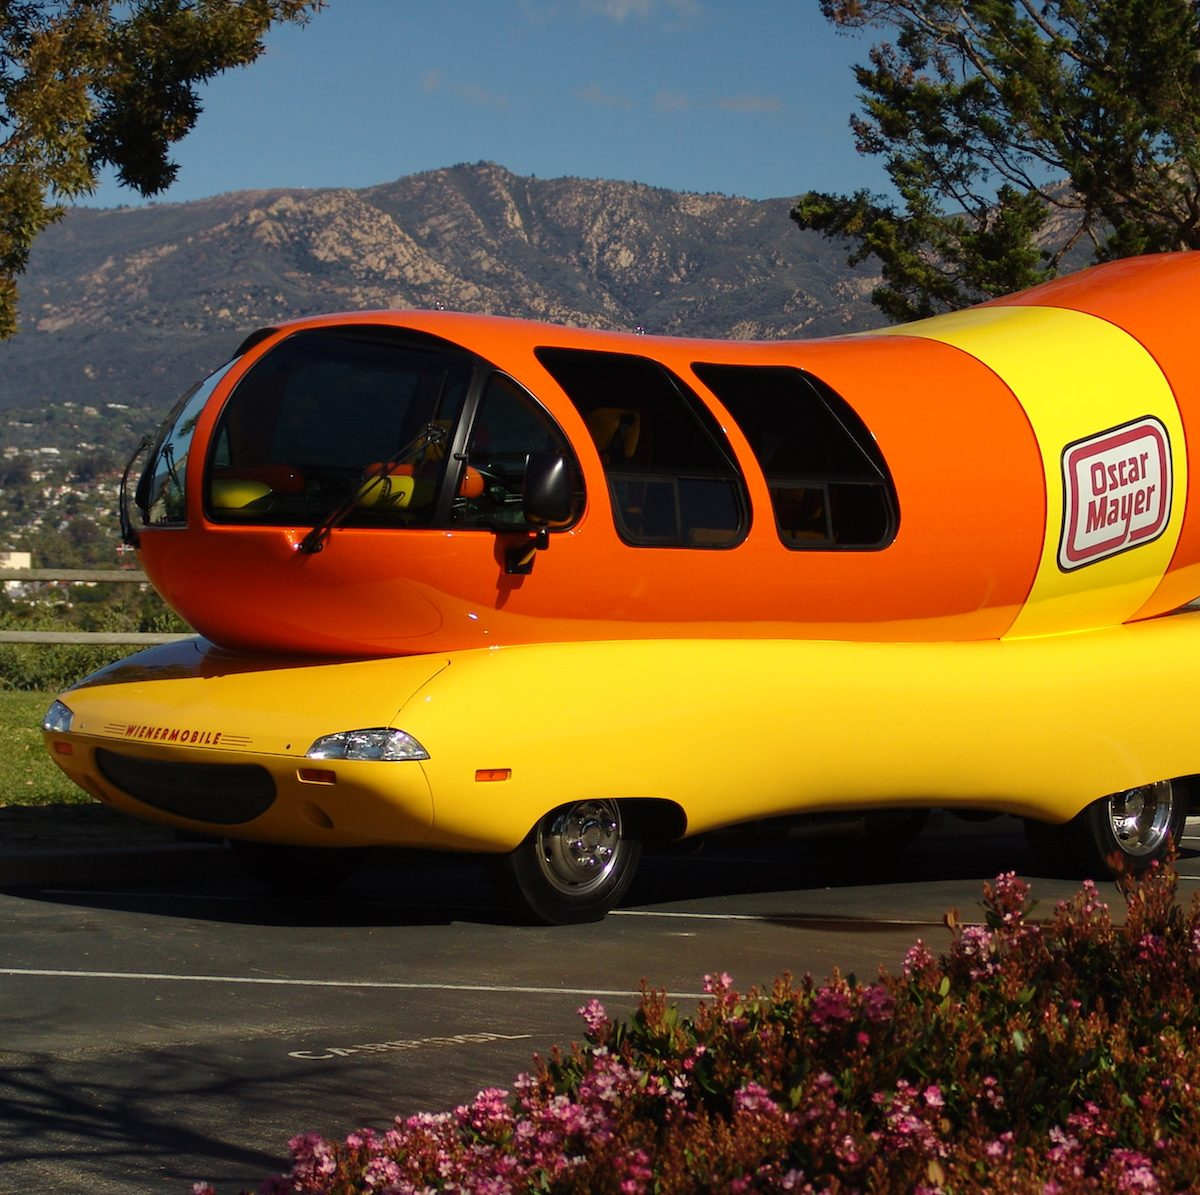 parking the wienermobile